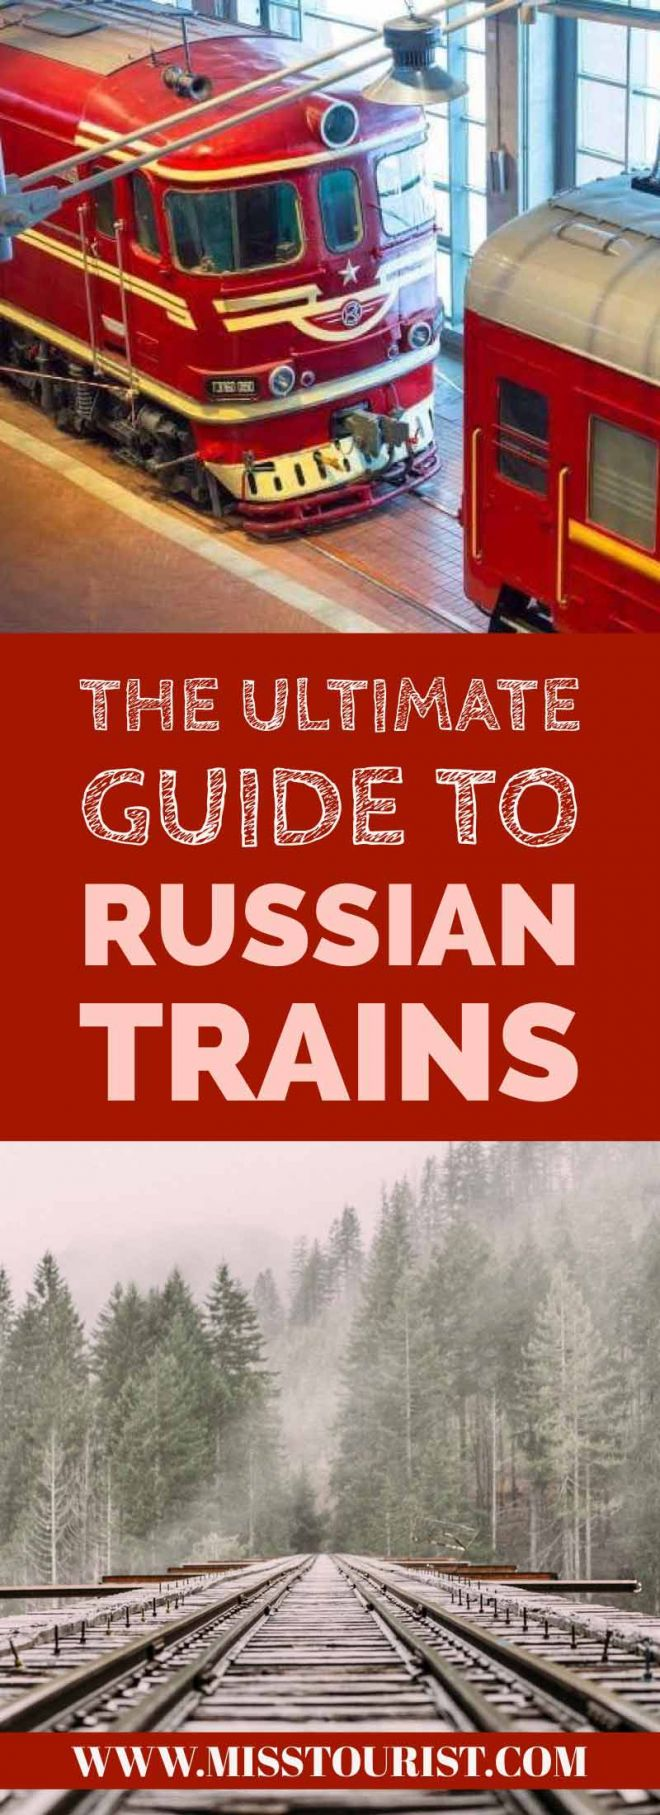 The Ultimate Guide to Russian Trains pin it for later